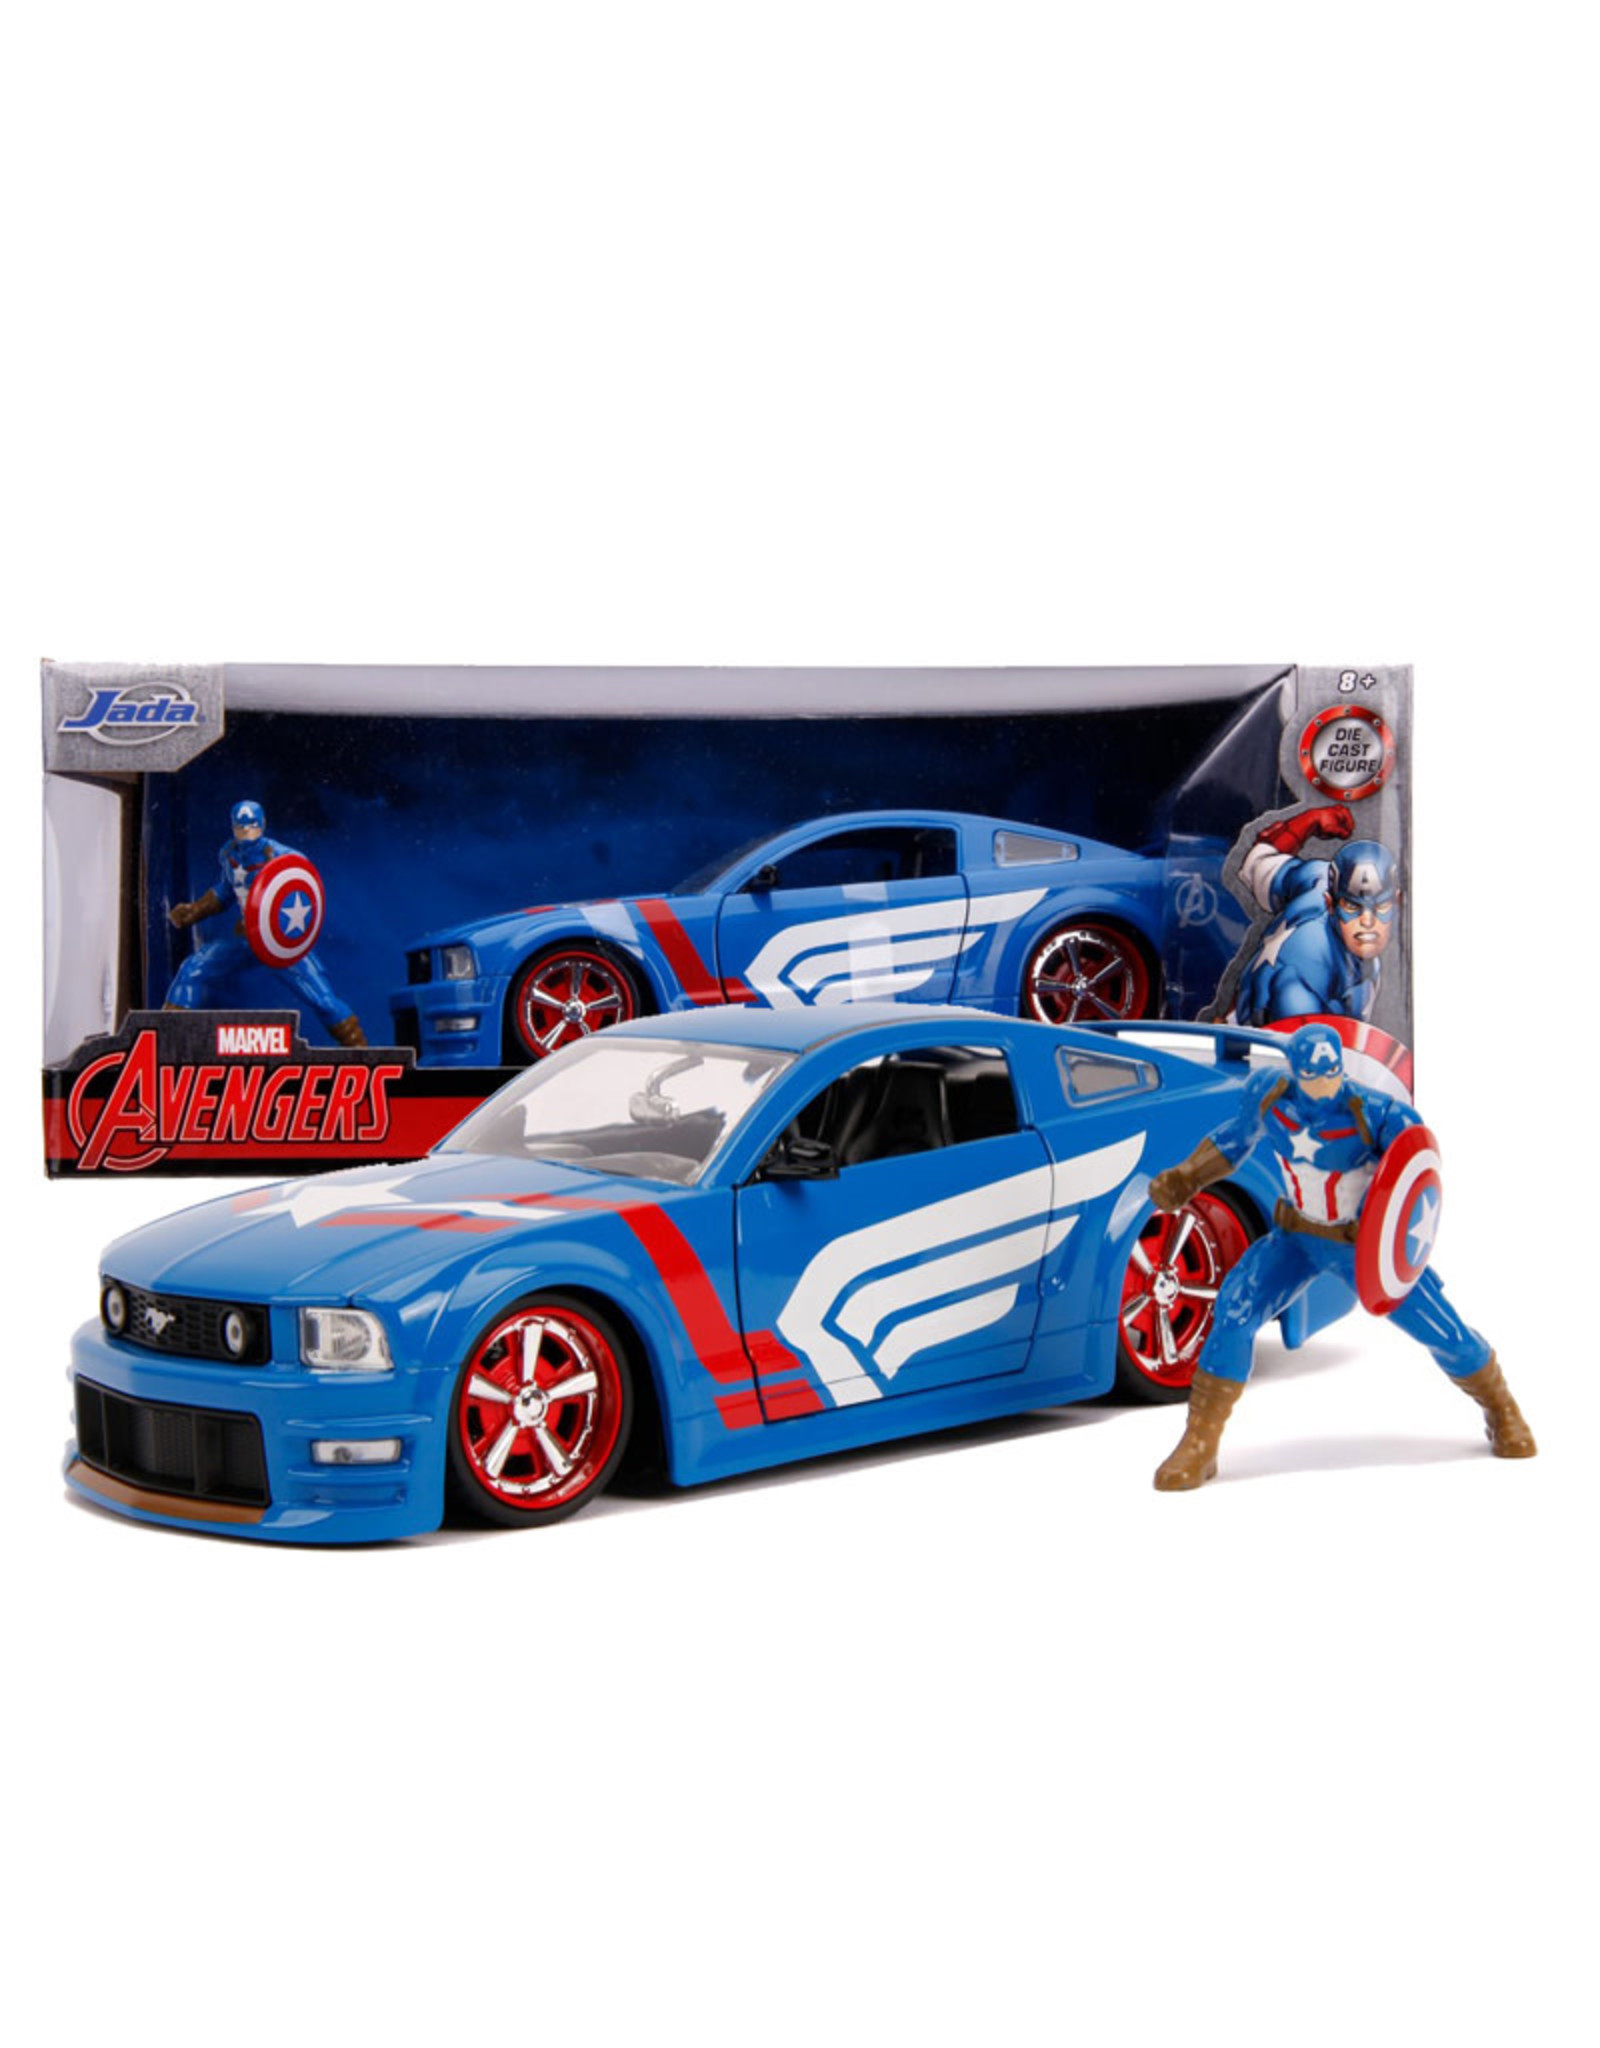 Captain America ( Voiture de collection en métal 1:24 ) Ford Mustang 2006